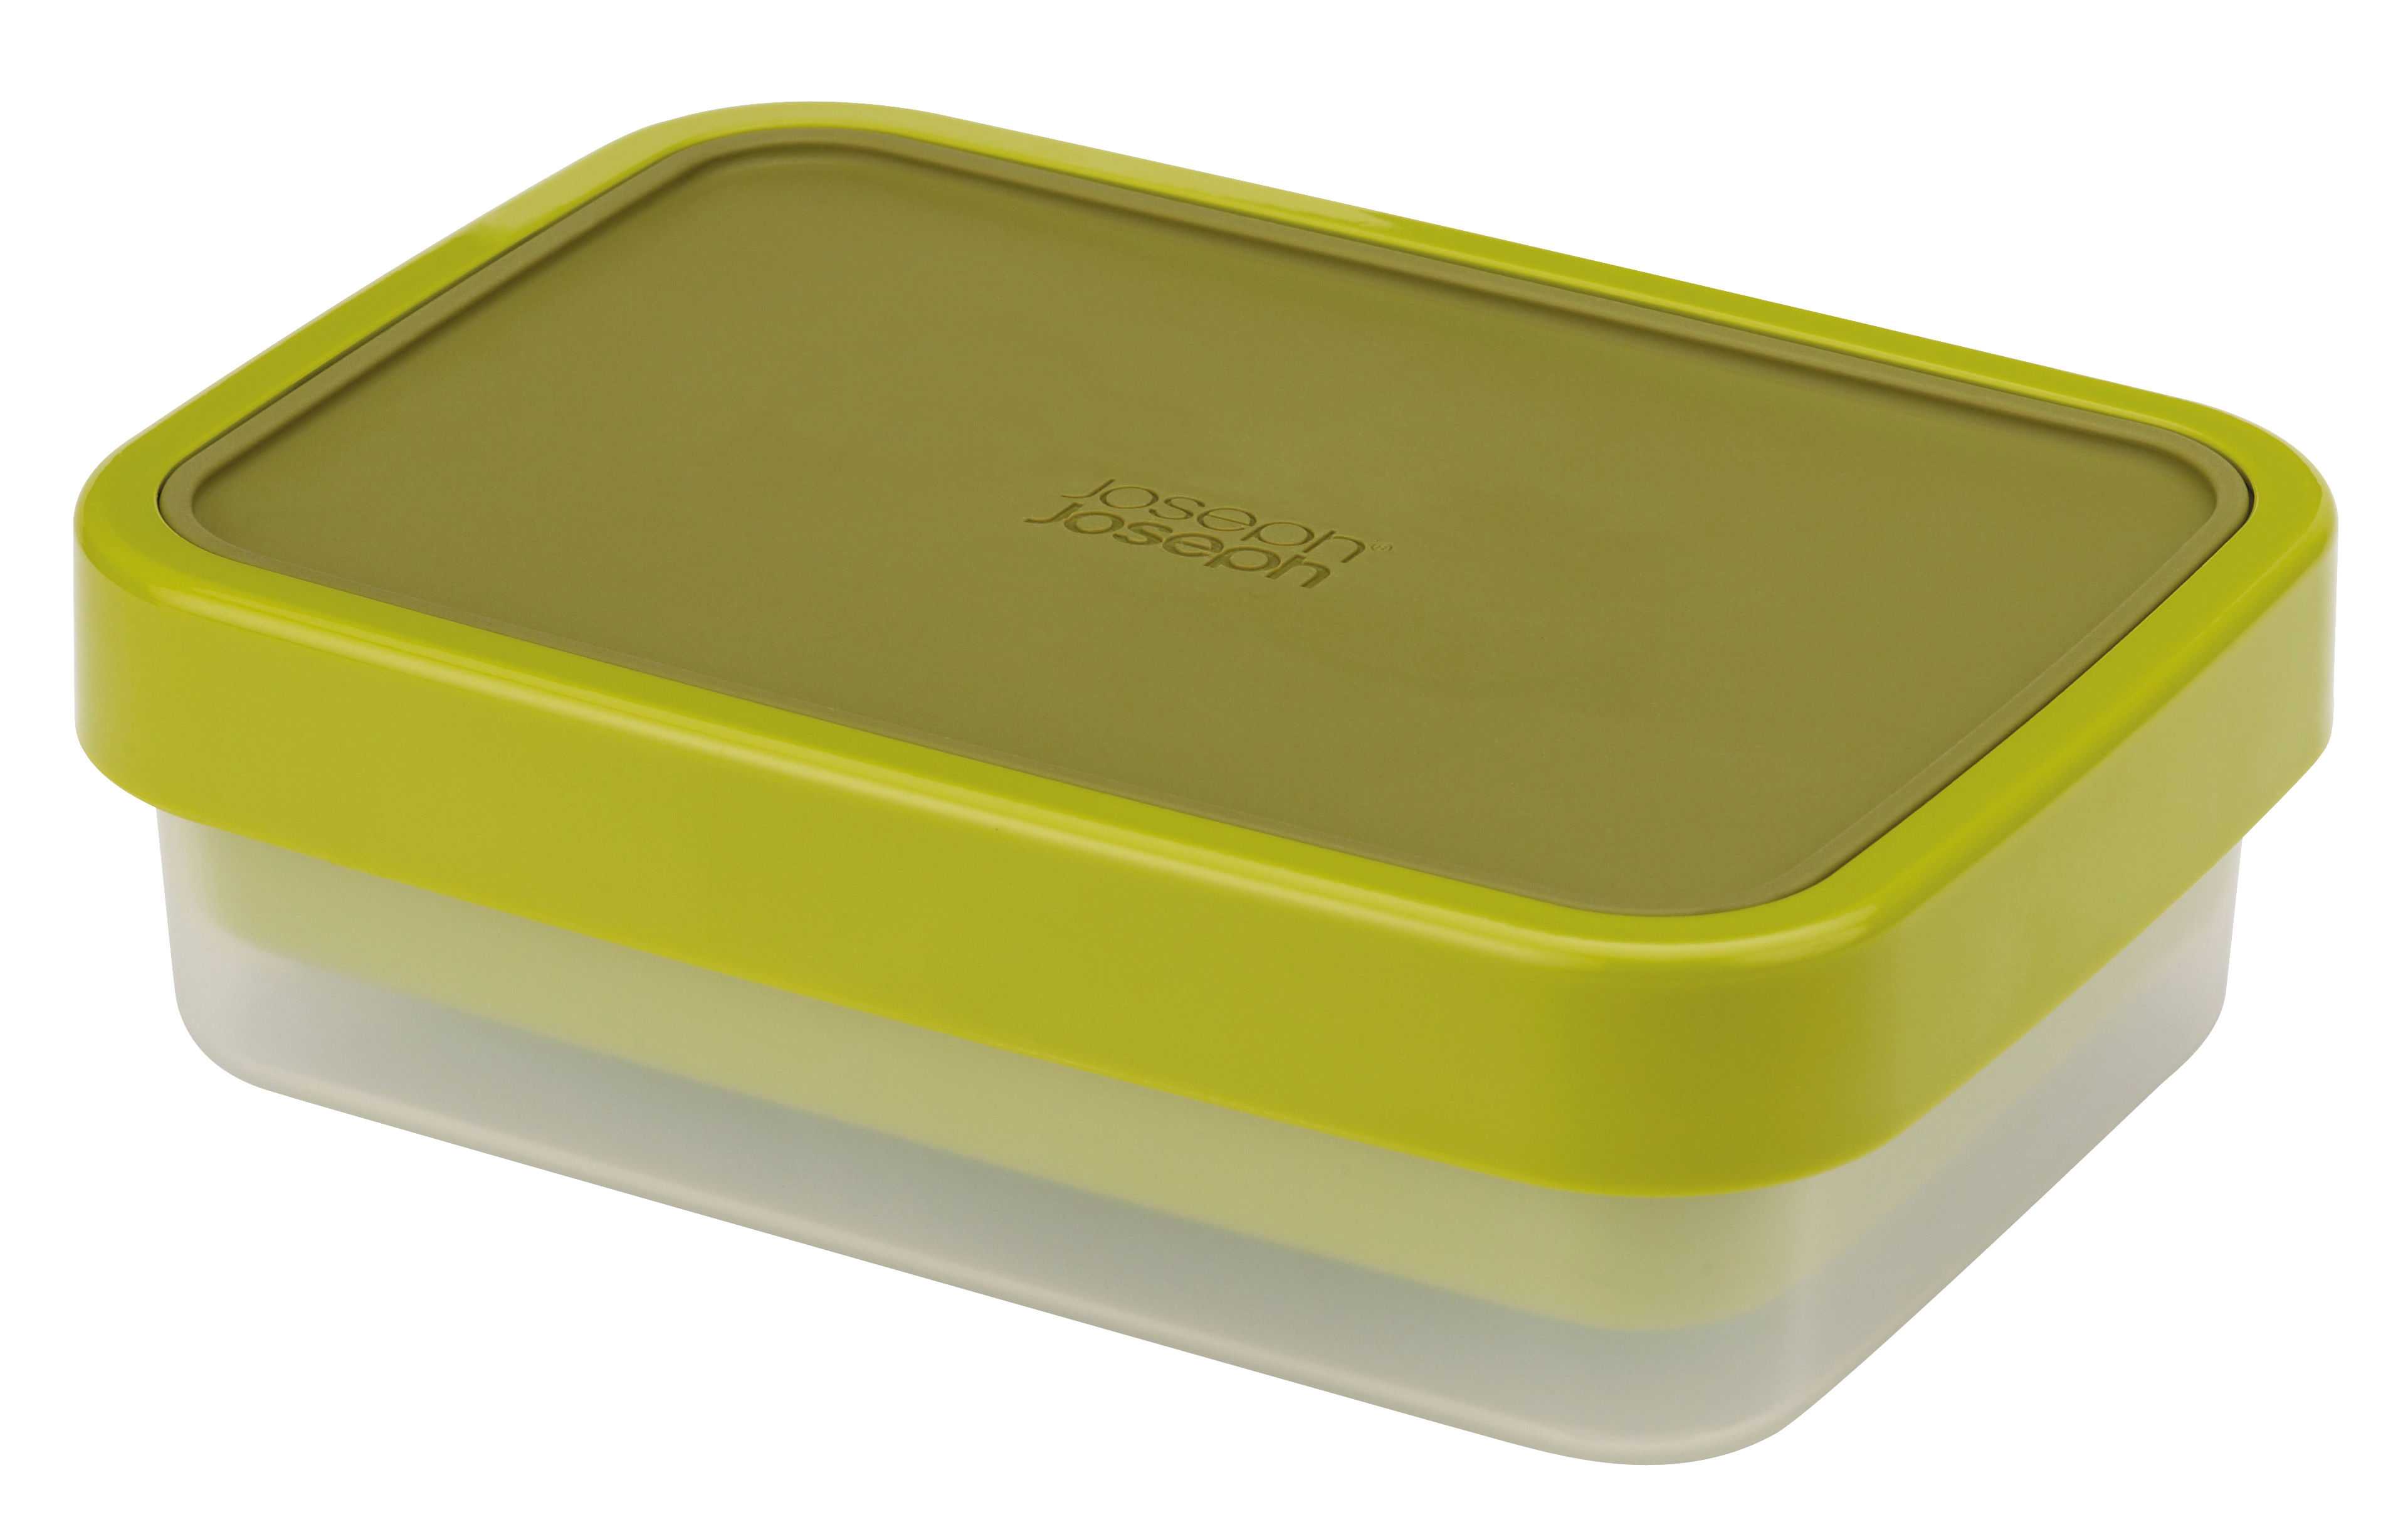 Kitchenware - Kitchen Storage Jars - GoEat Lunch box - 2 stackable boxes set by Joseph Joseph - Green - Polypropylene, Silicone